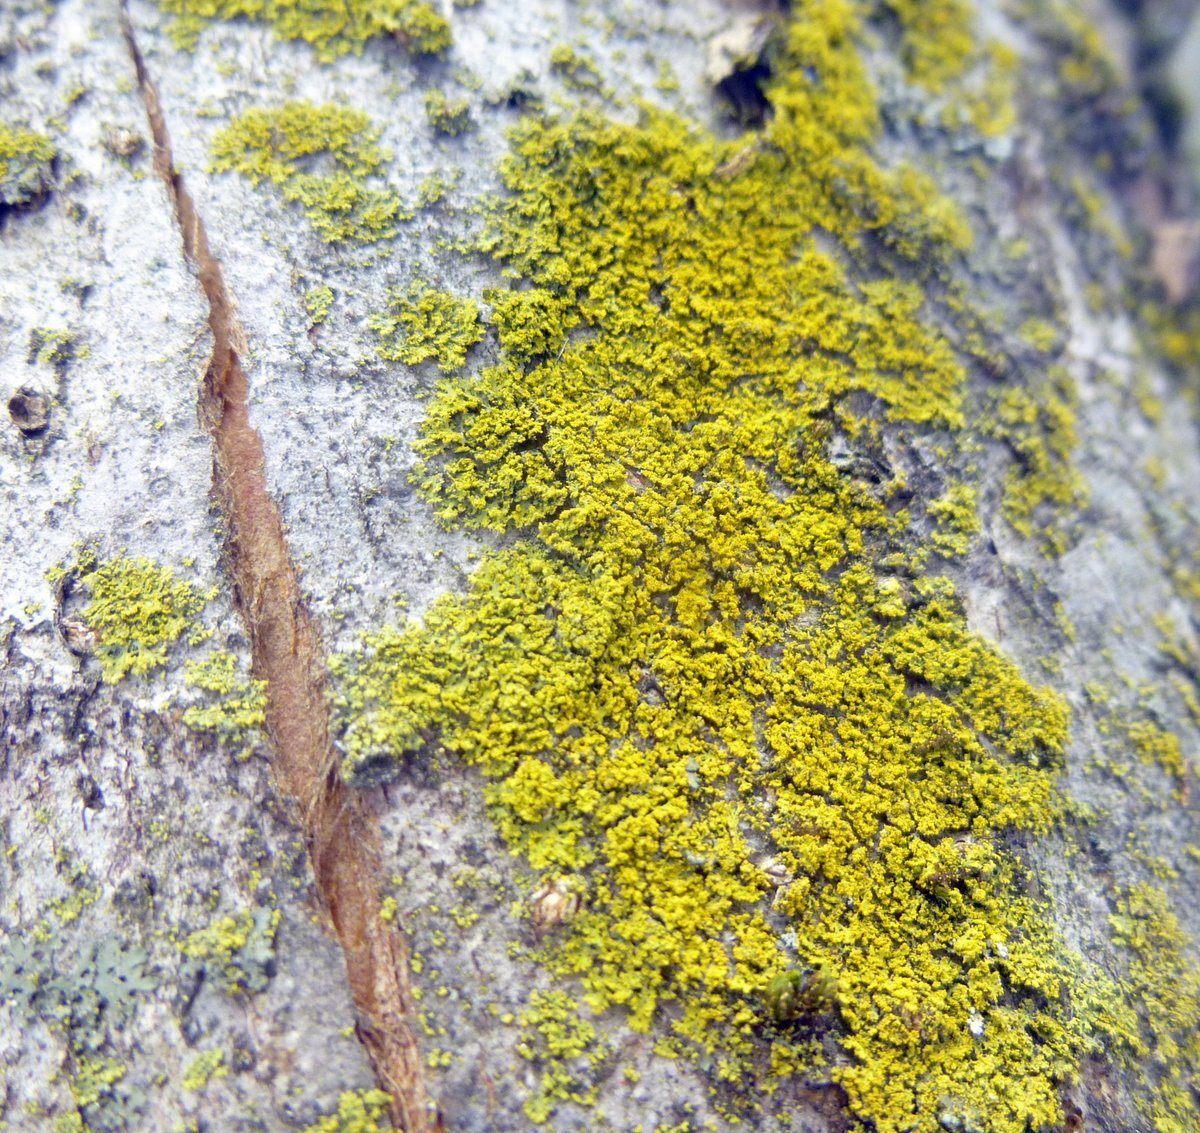 13. Candle Flame Lichen